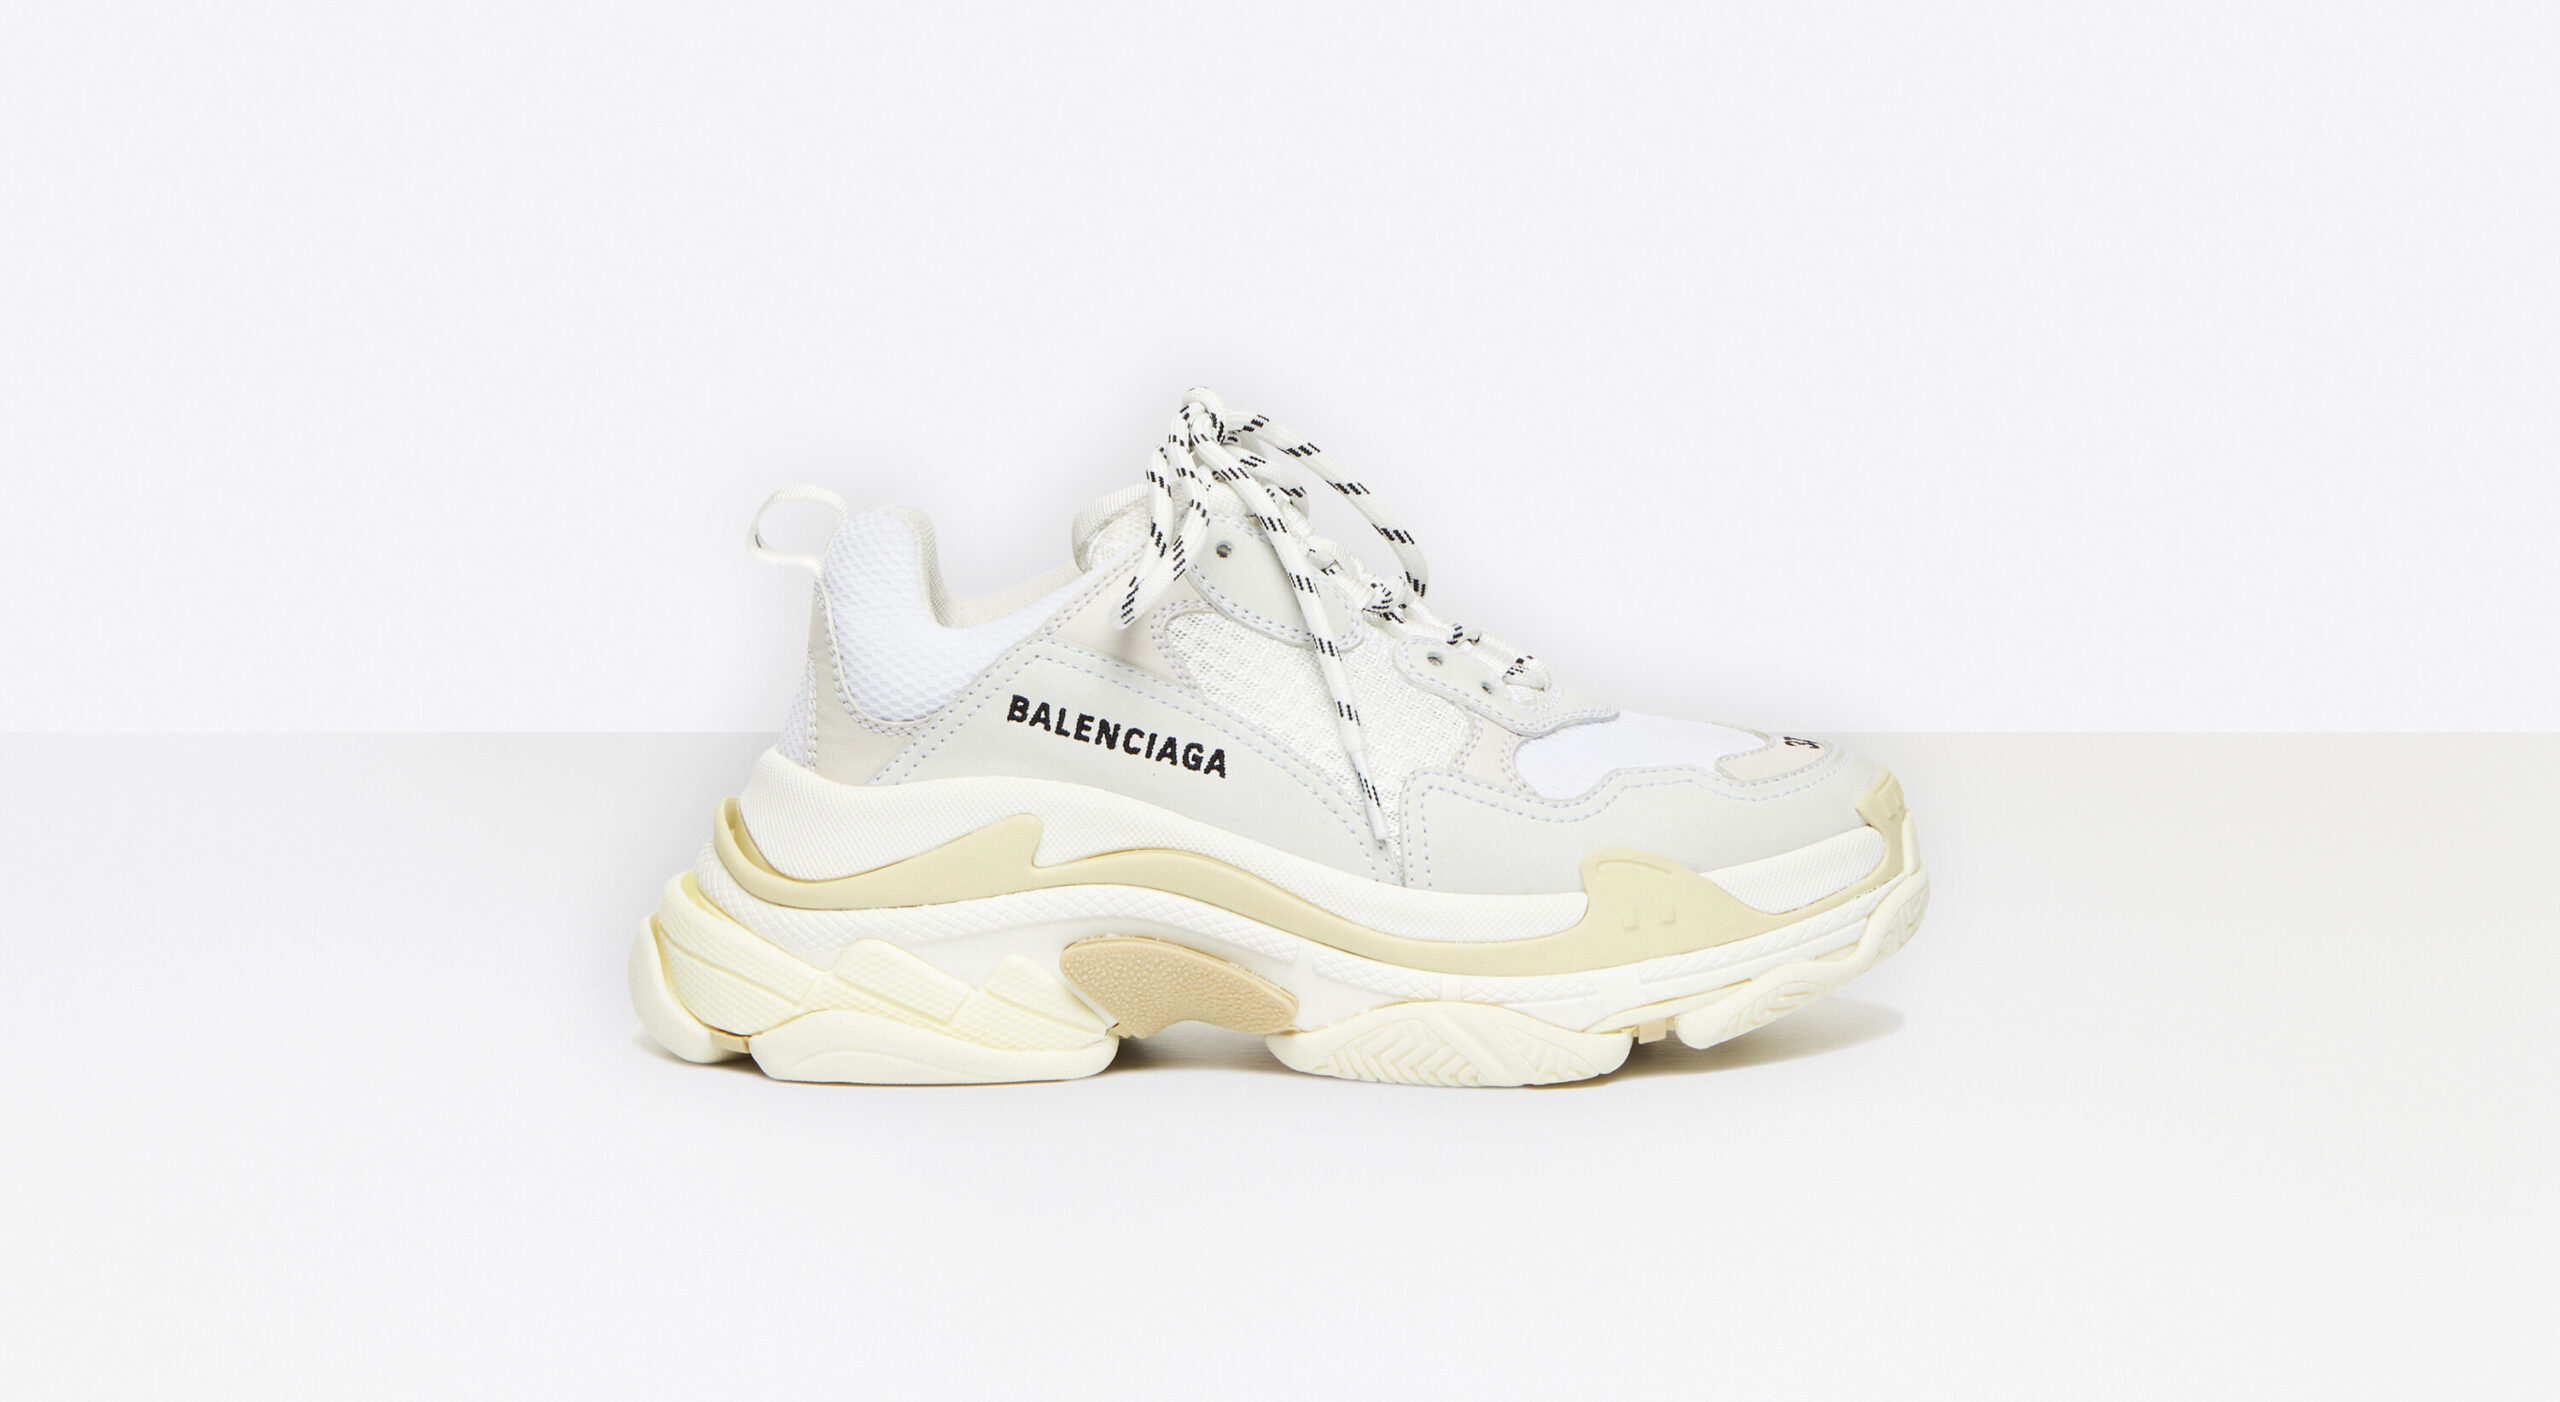 The famous Balenciaga trainers, a truly athleisure fashion brand.